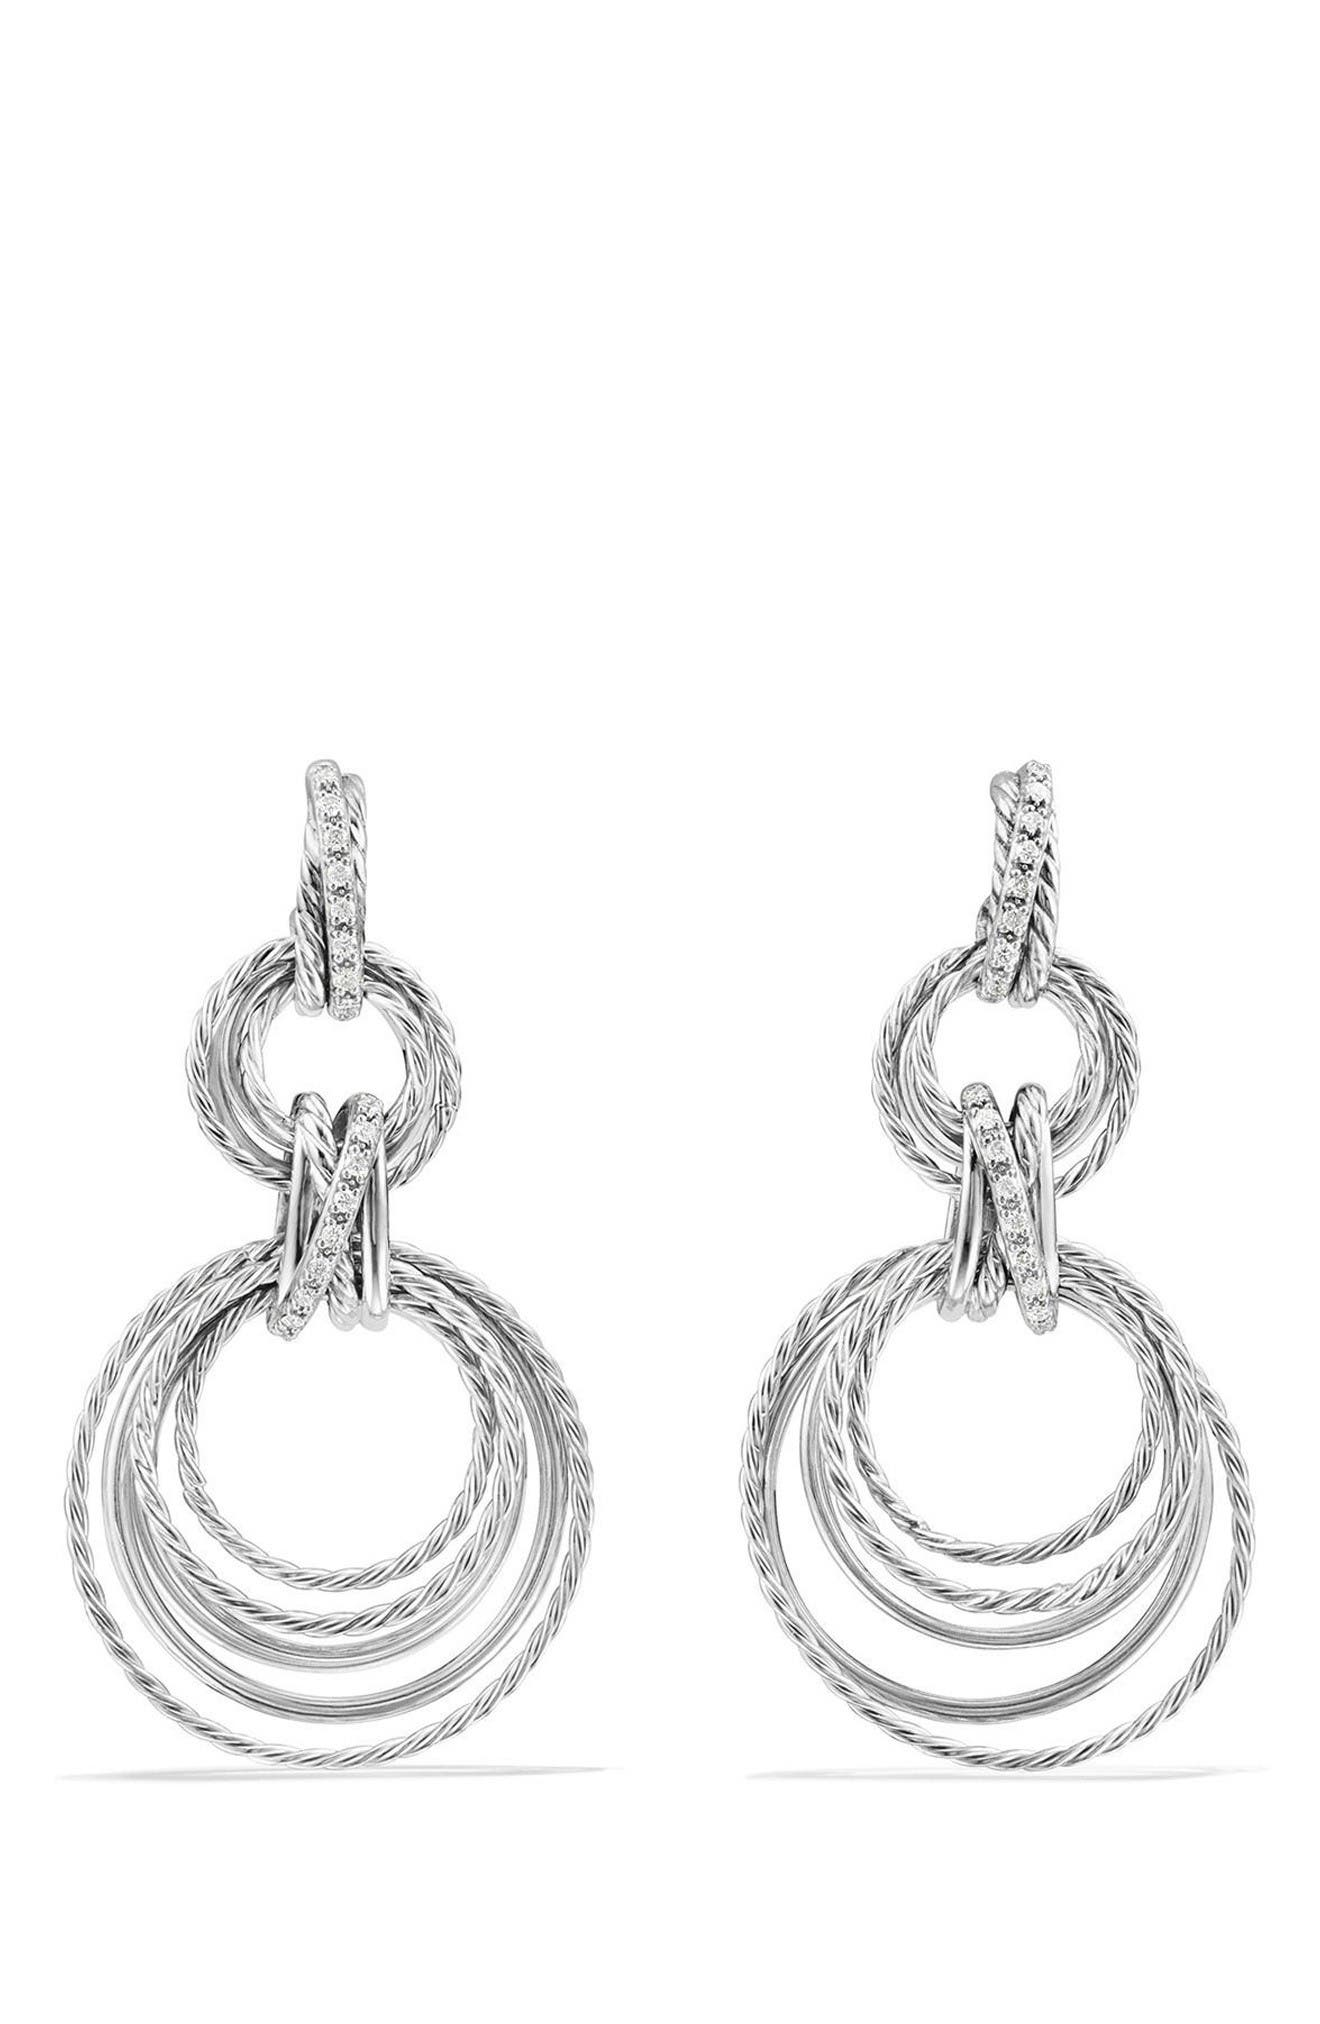 DAVID YURMAN Crossover Double Drop Earrings with Diamonds